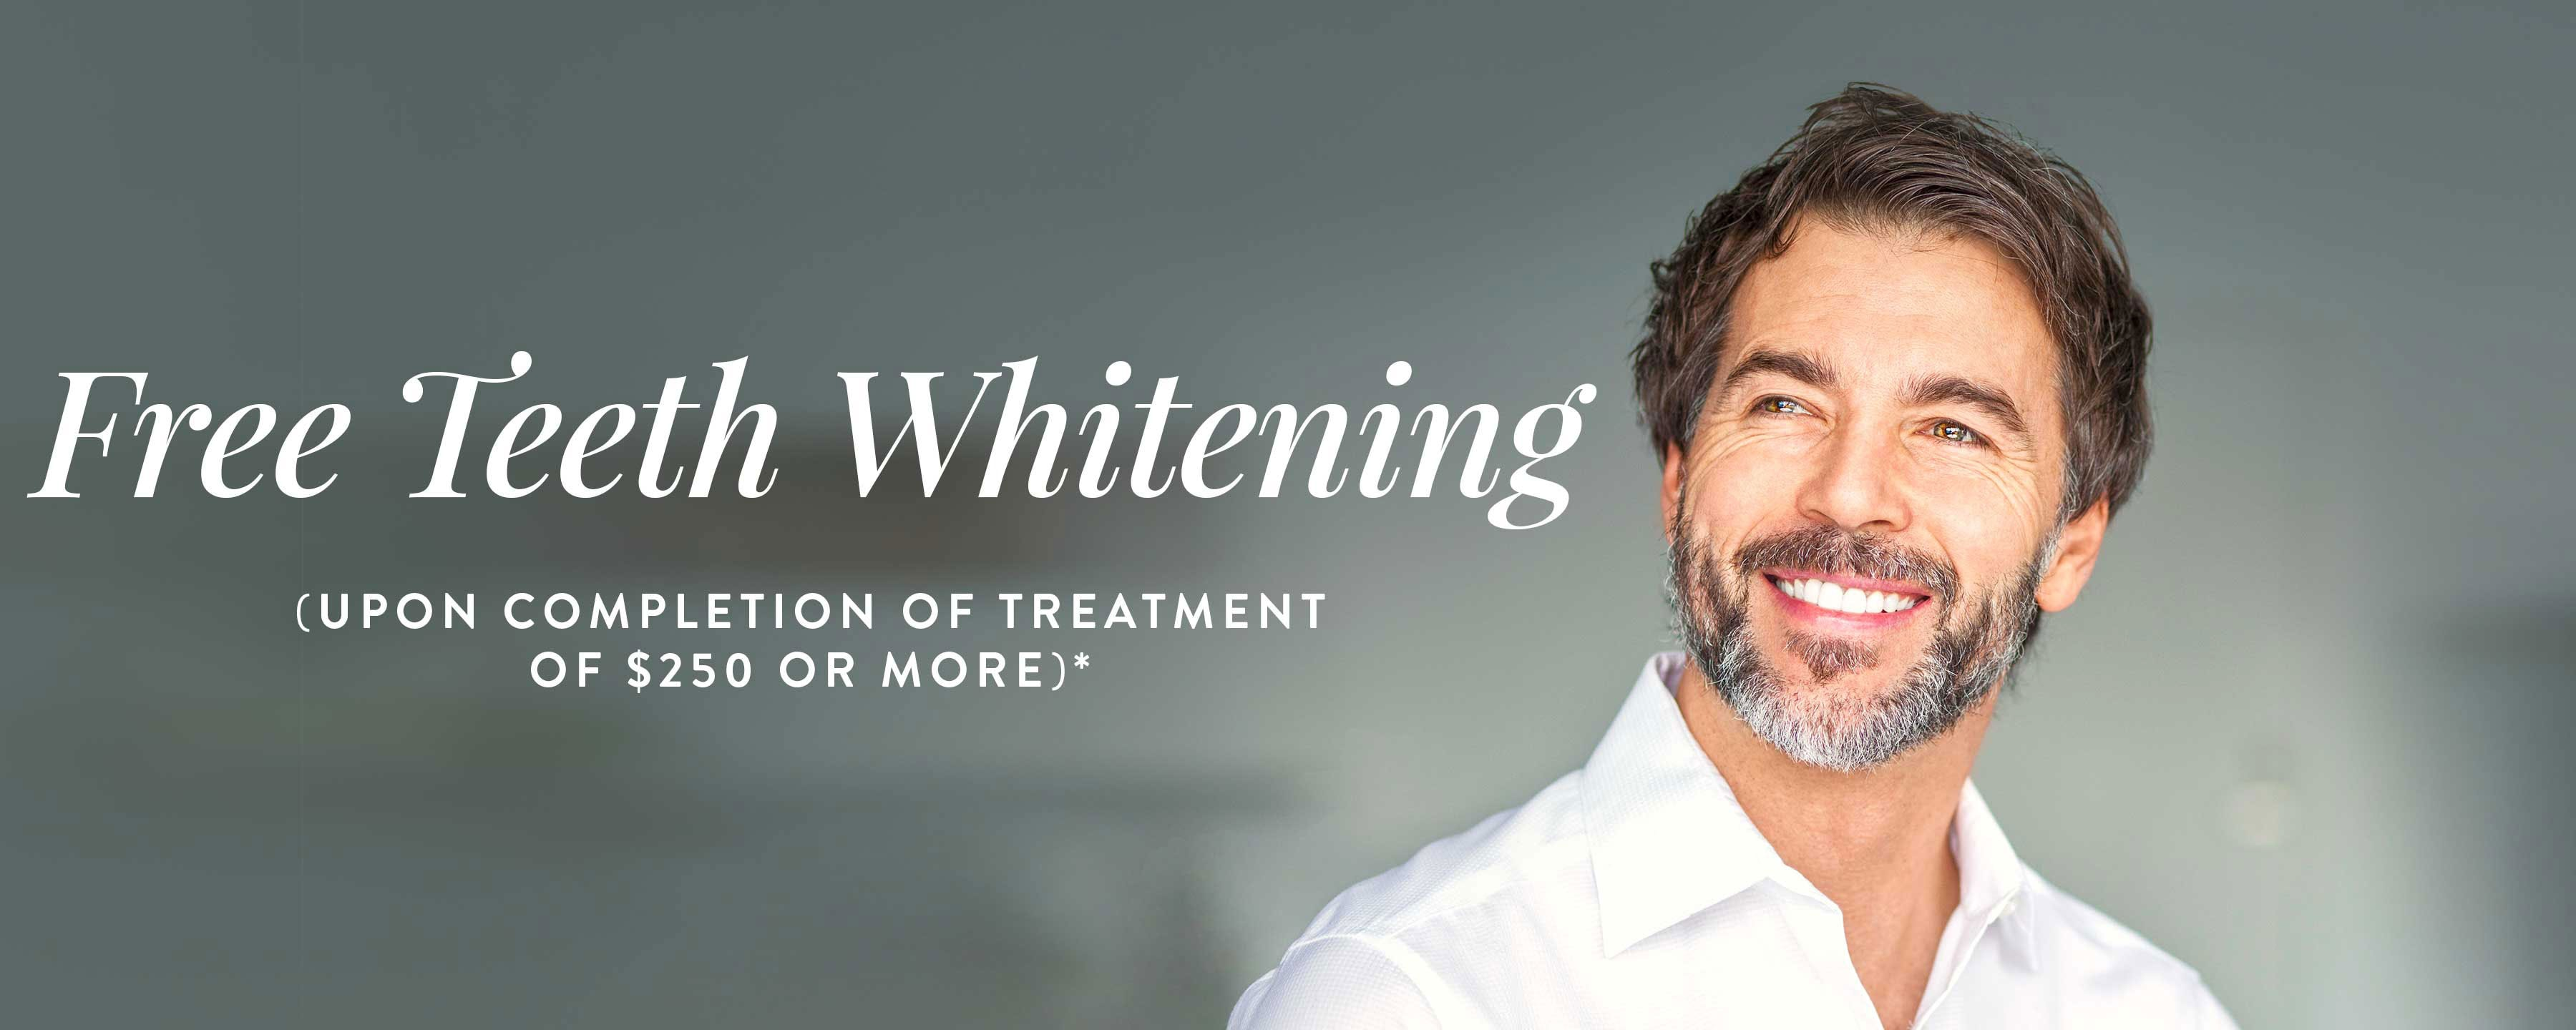 Free Teeth Whitening (Upon completion of treatment of $250 or more)*